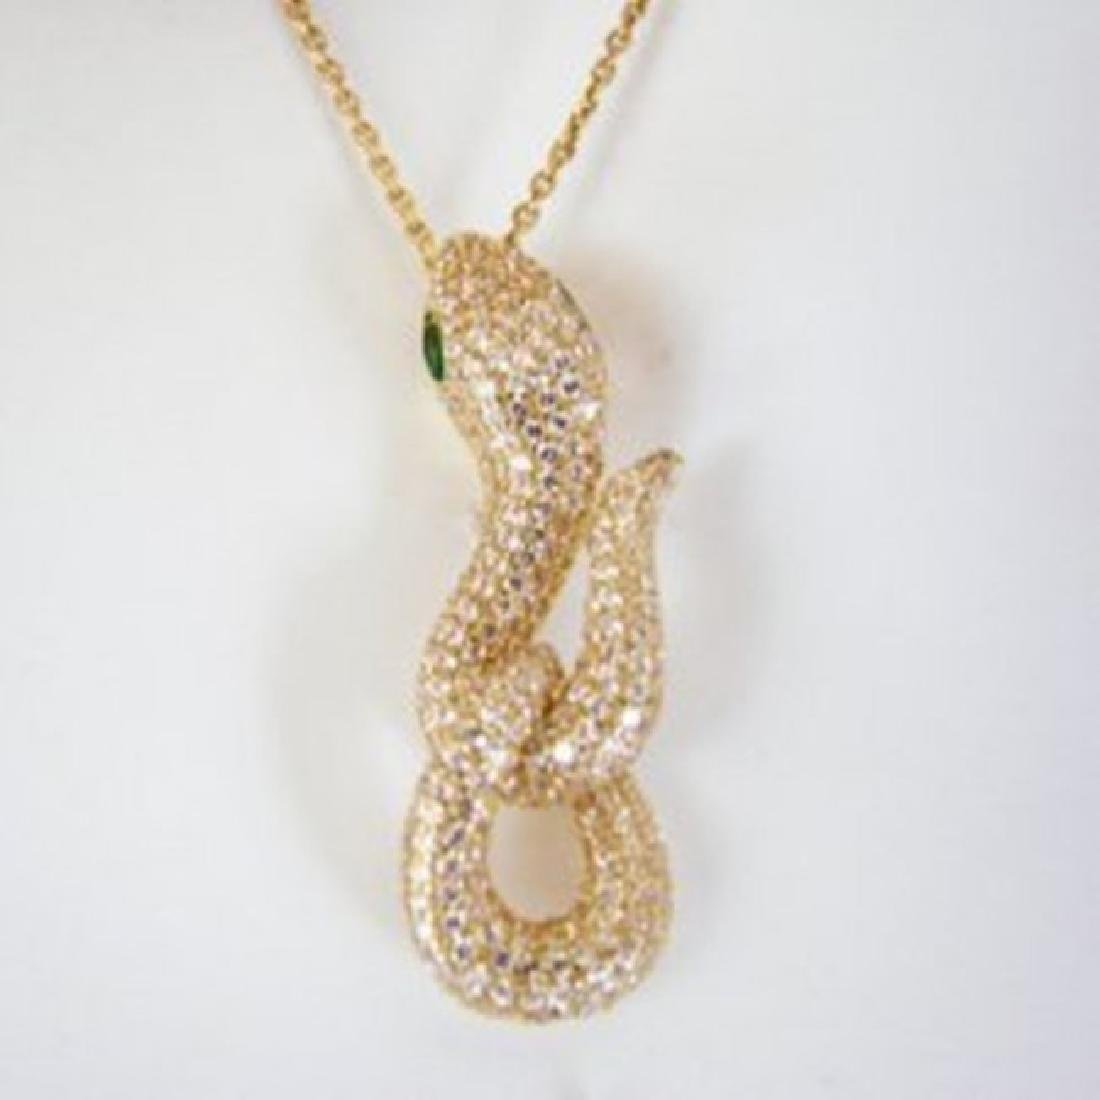 Creation Diamond Snake Pendant 3.28Ct 18k Y/g Overlay